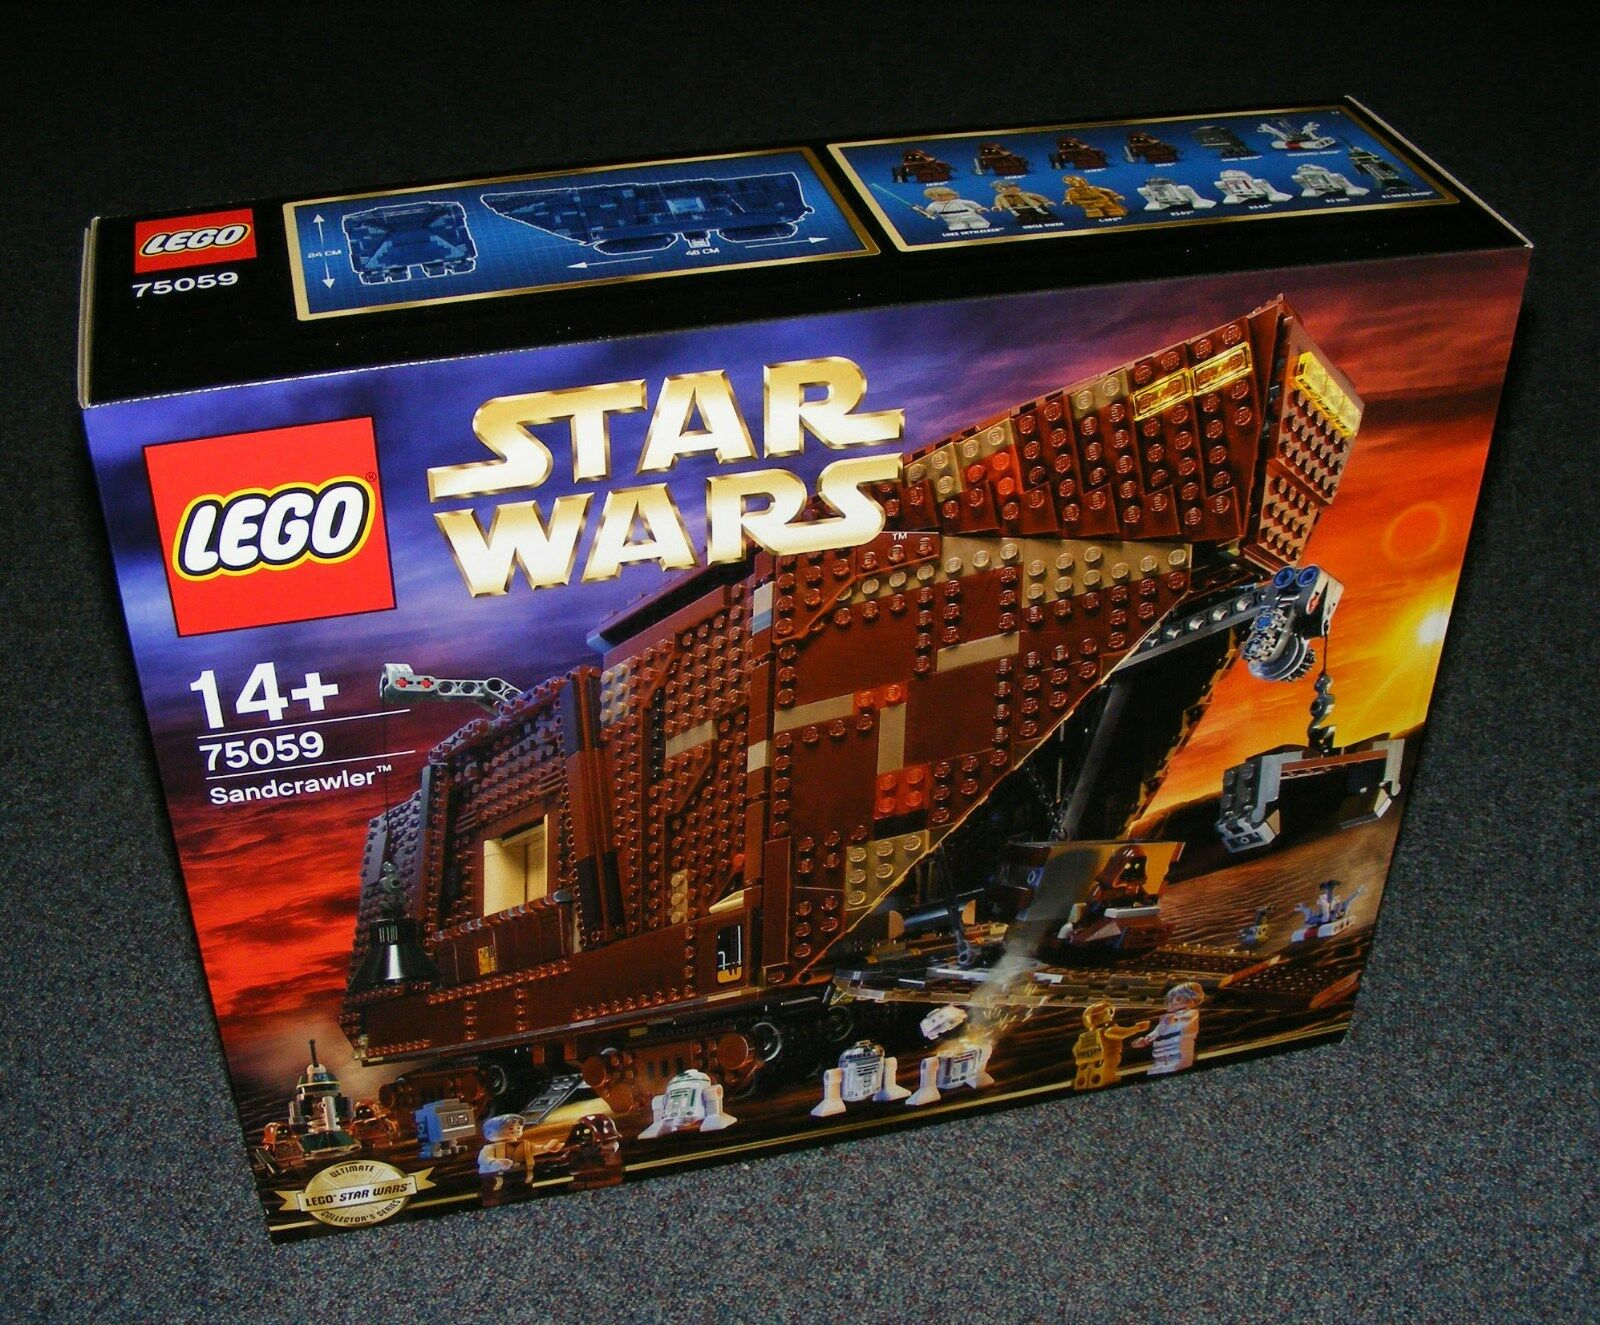 STAR WARS LEGO 75059 SANDCRAWLER UCS BRAND NEW SEALED ULTIMATE COLLECTORS